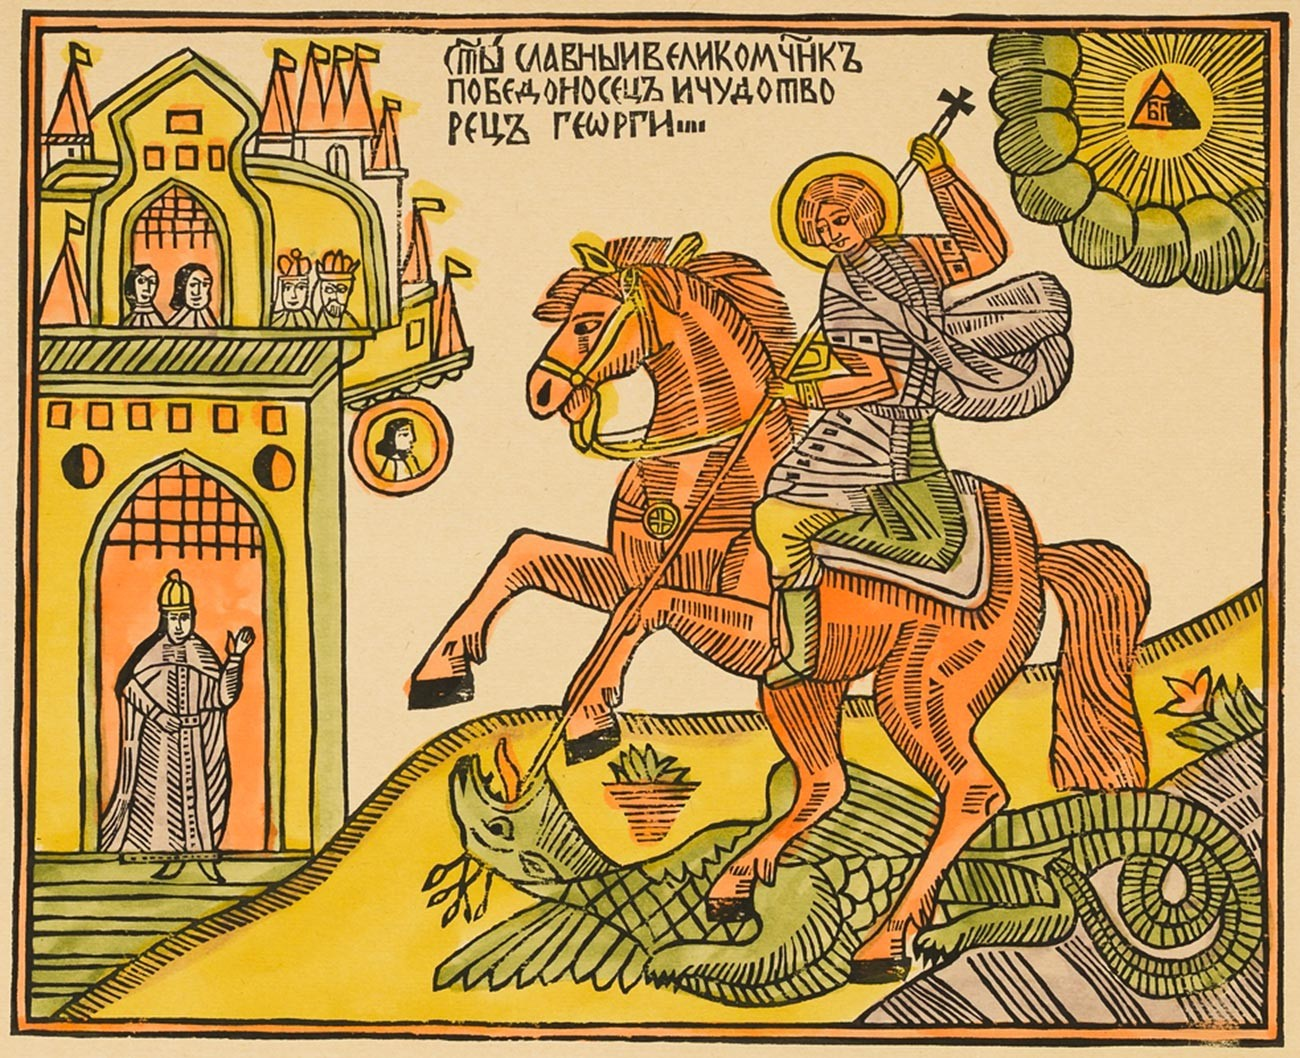 Lubok 'St. George the Victorious', 1967-1980.